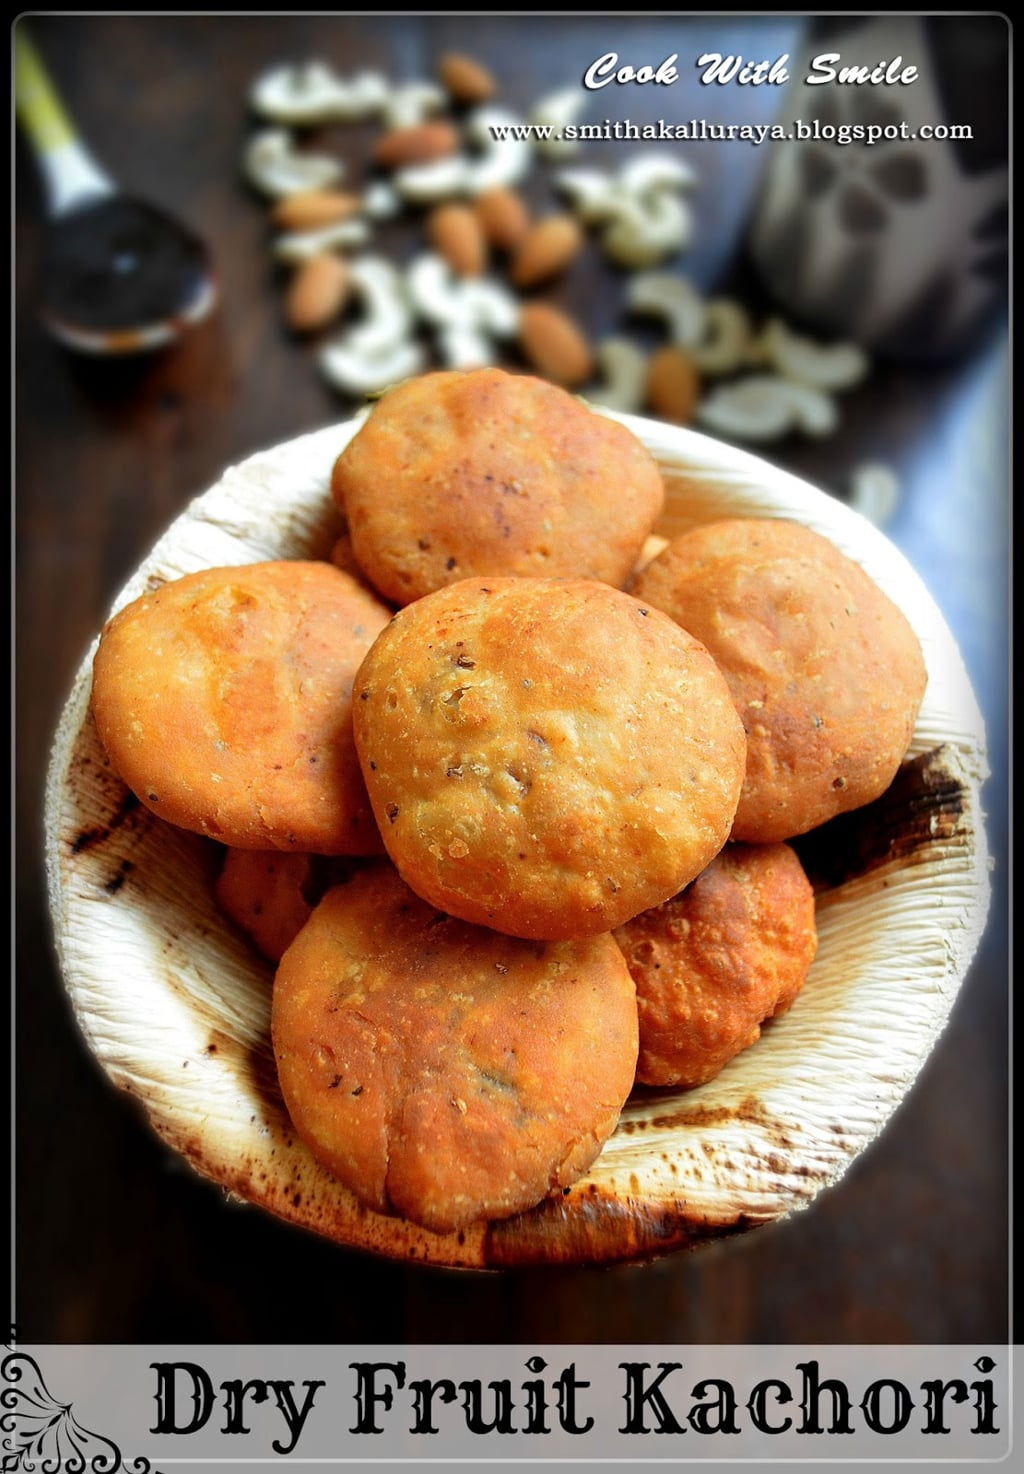 DRY FRUIT KACHORI recipe